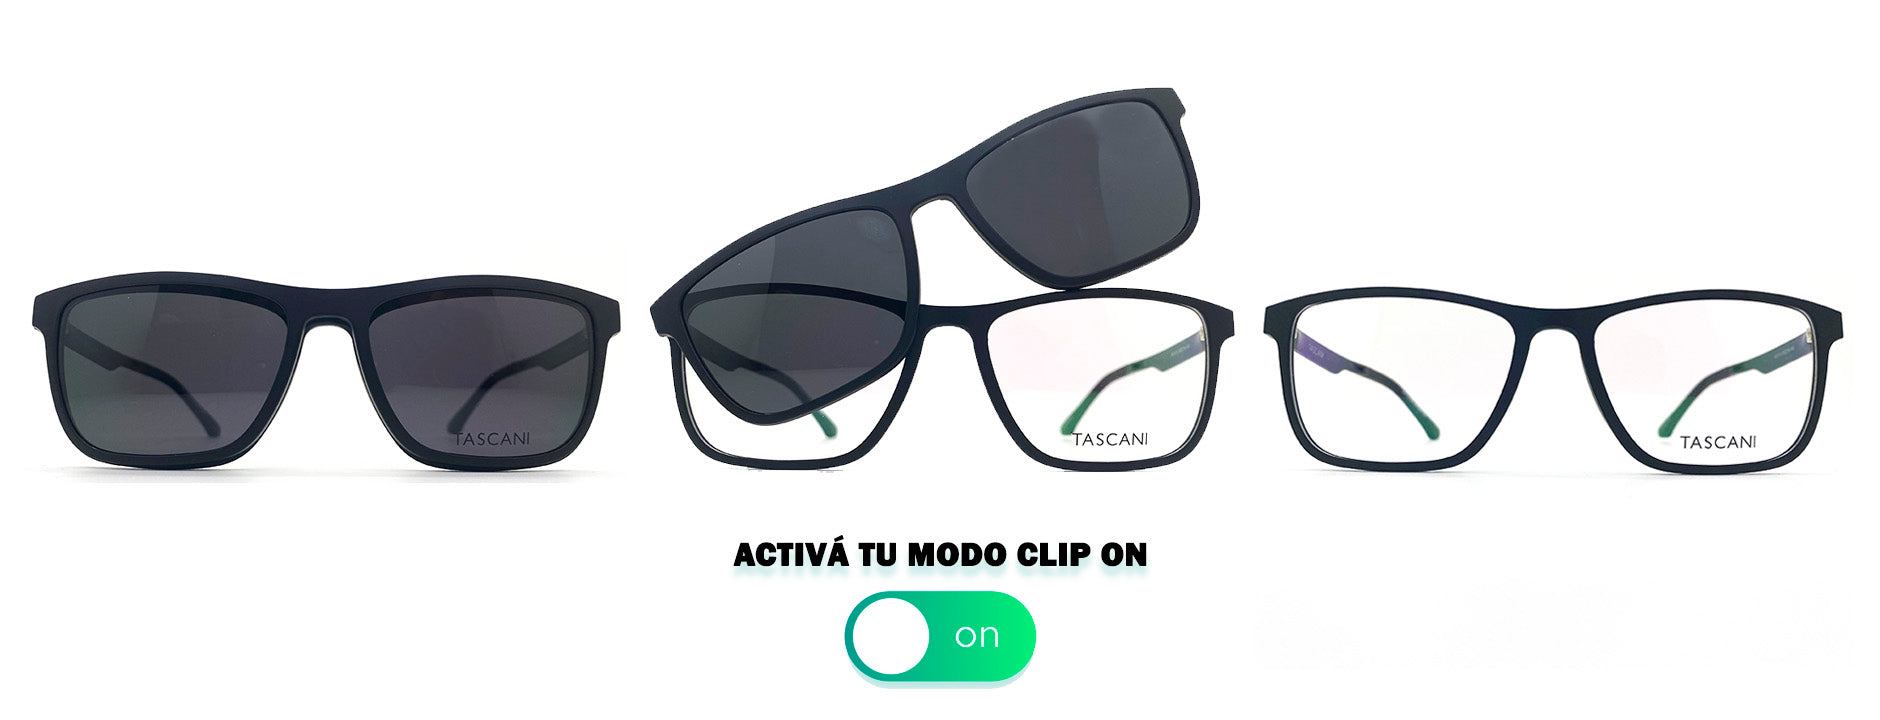 Anteojo Clip On